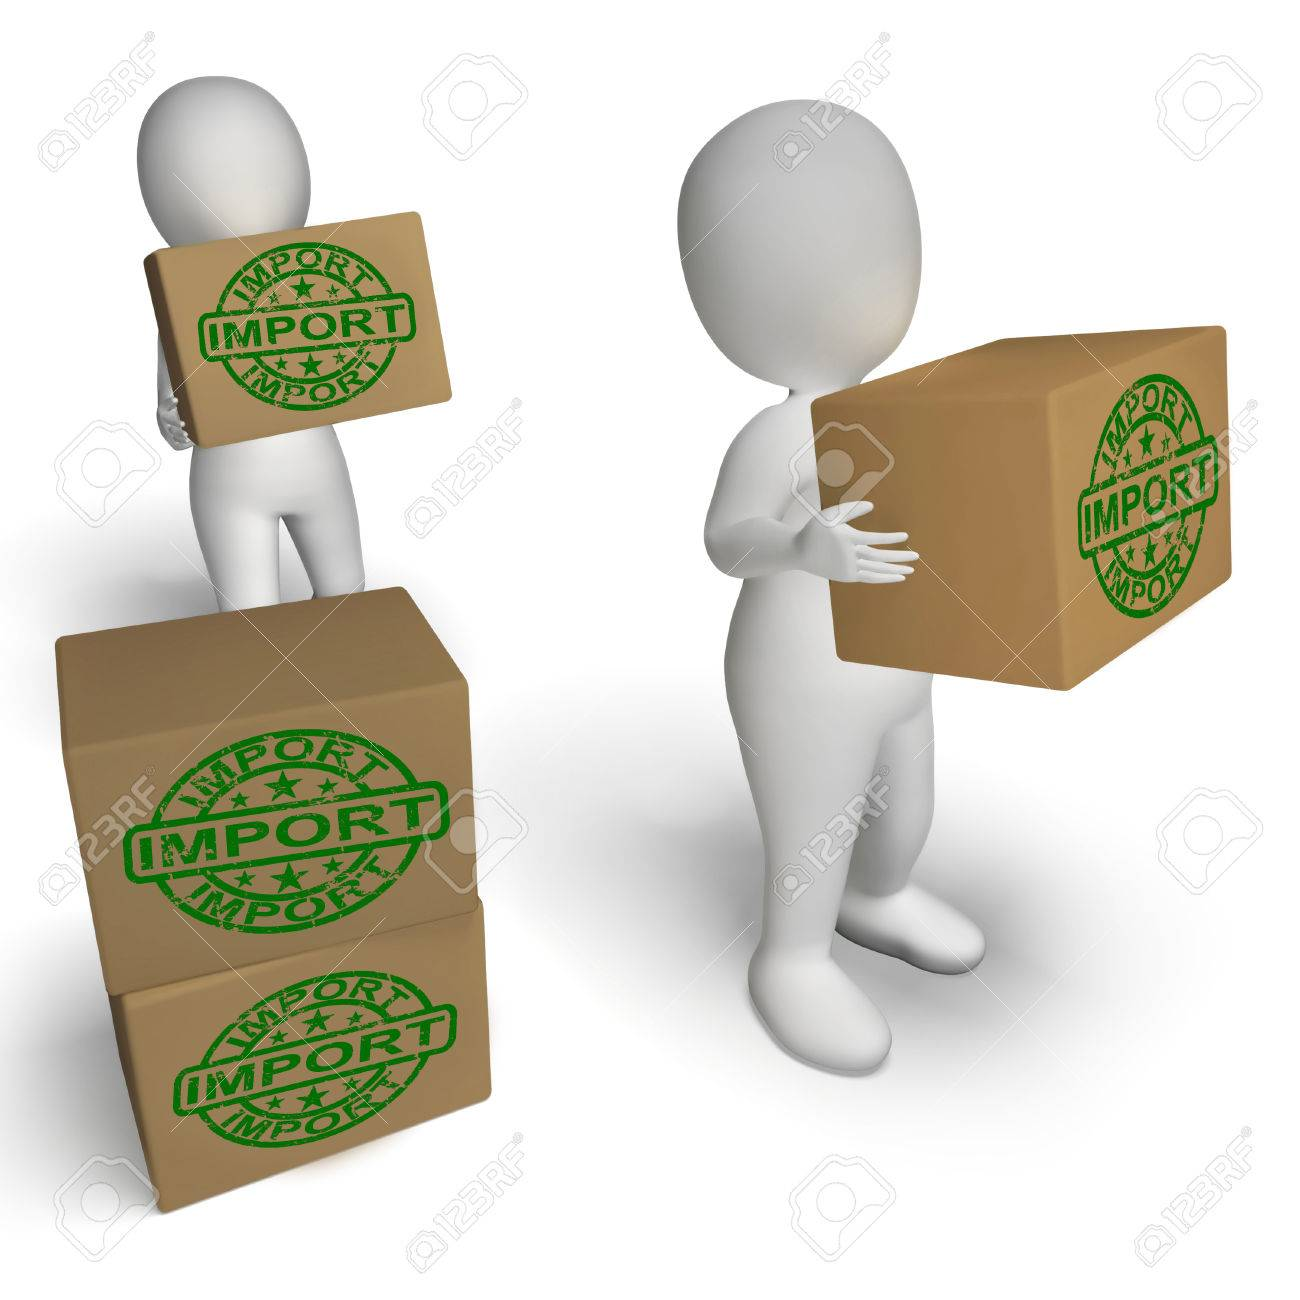 Import Boxes Showing Importing Goods and Merchandise Stock Photo - 26065702